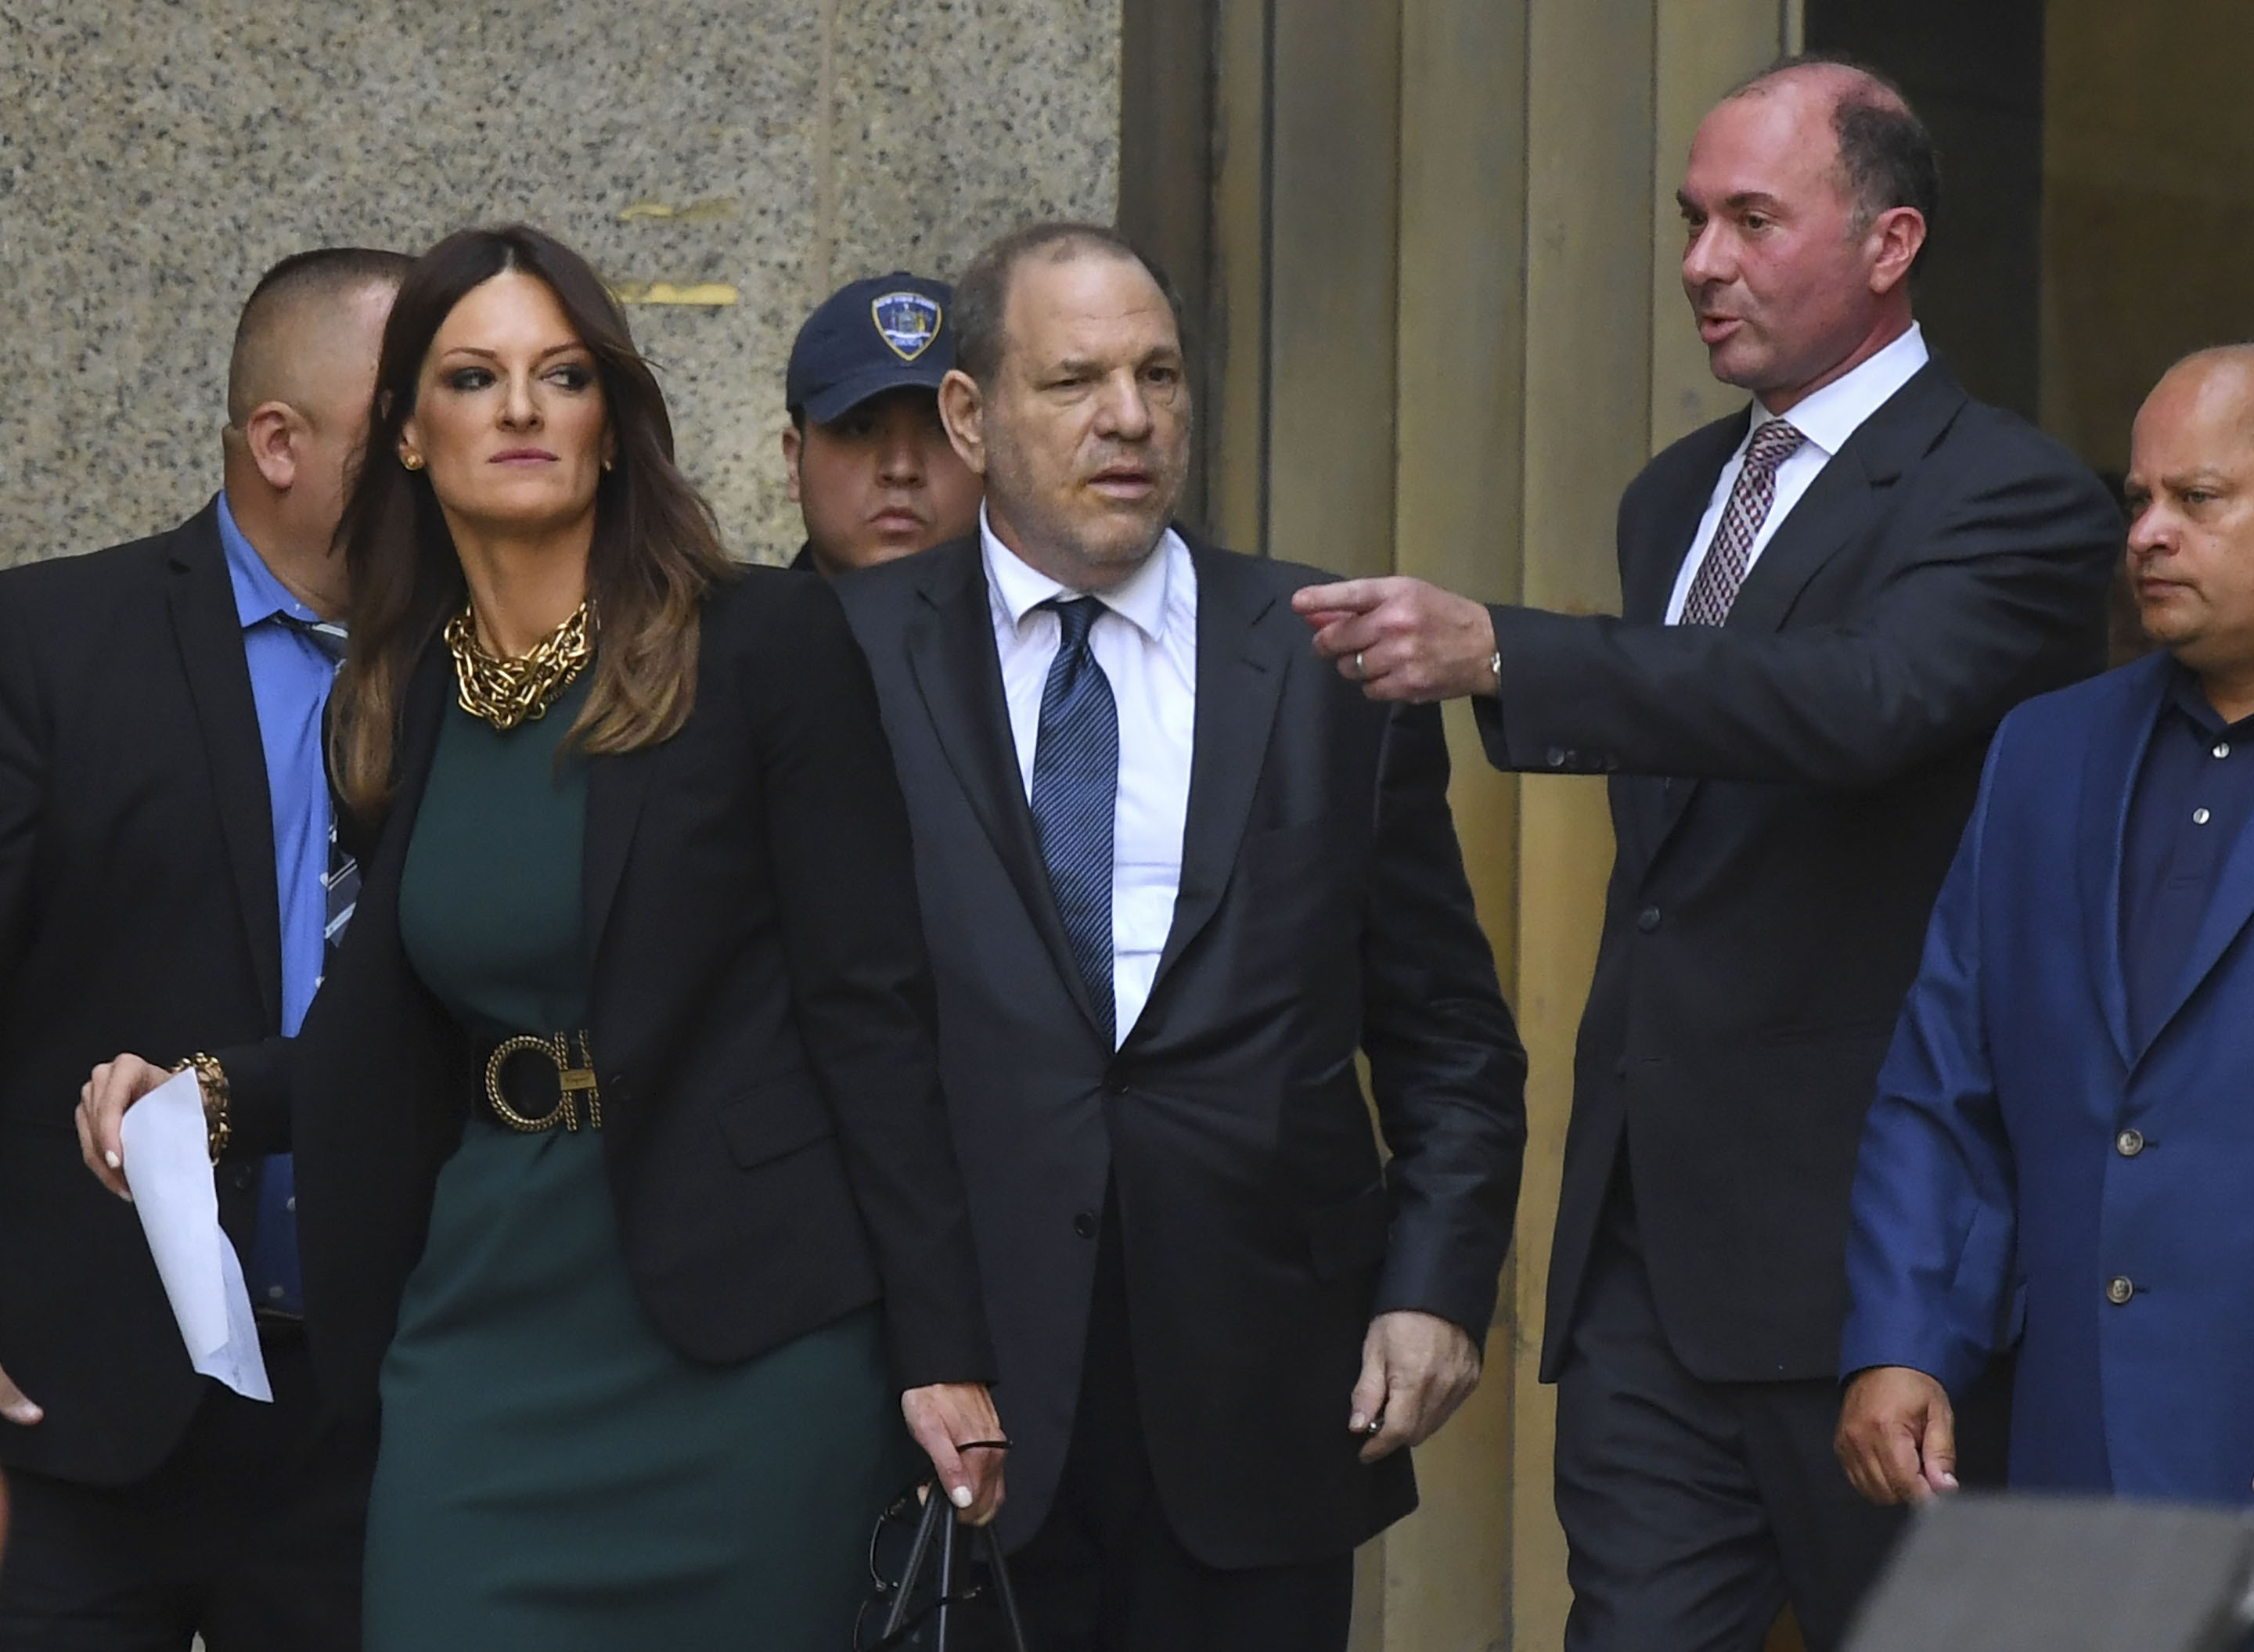 Harvey Weinstein Defense Team